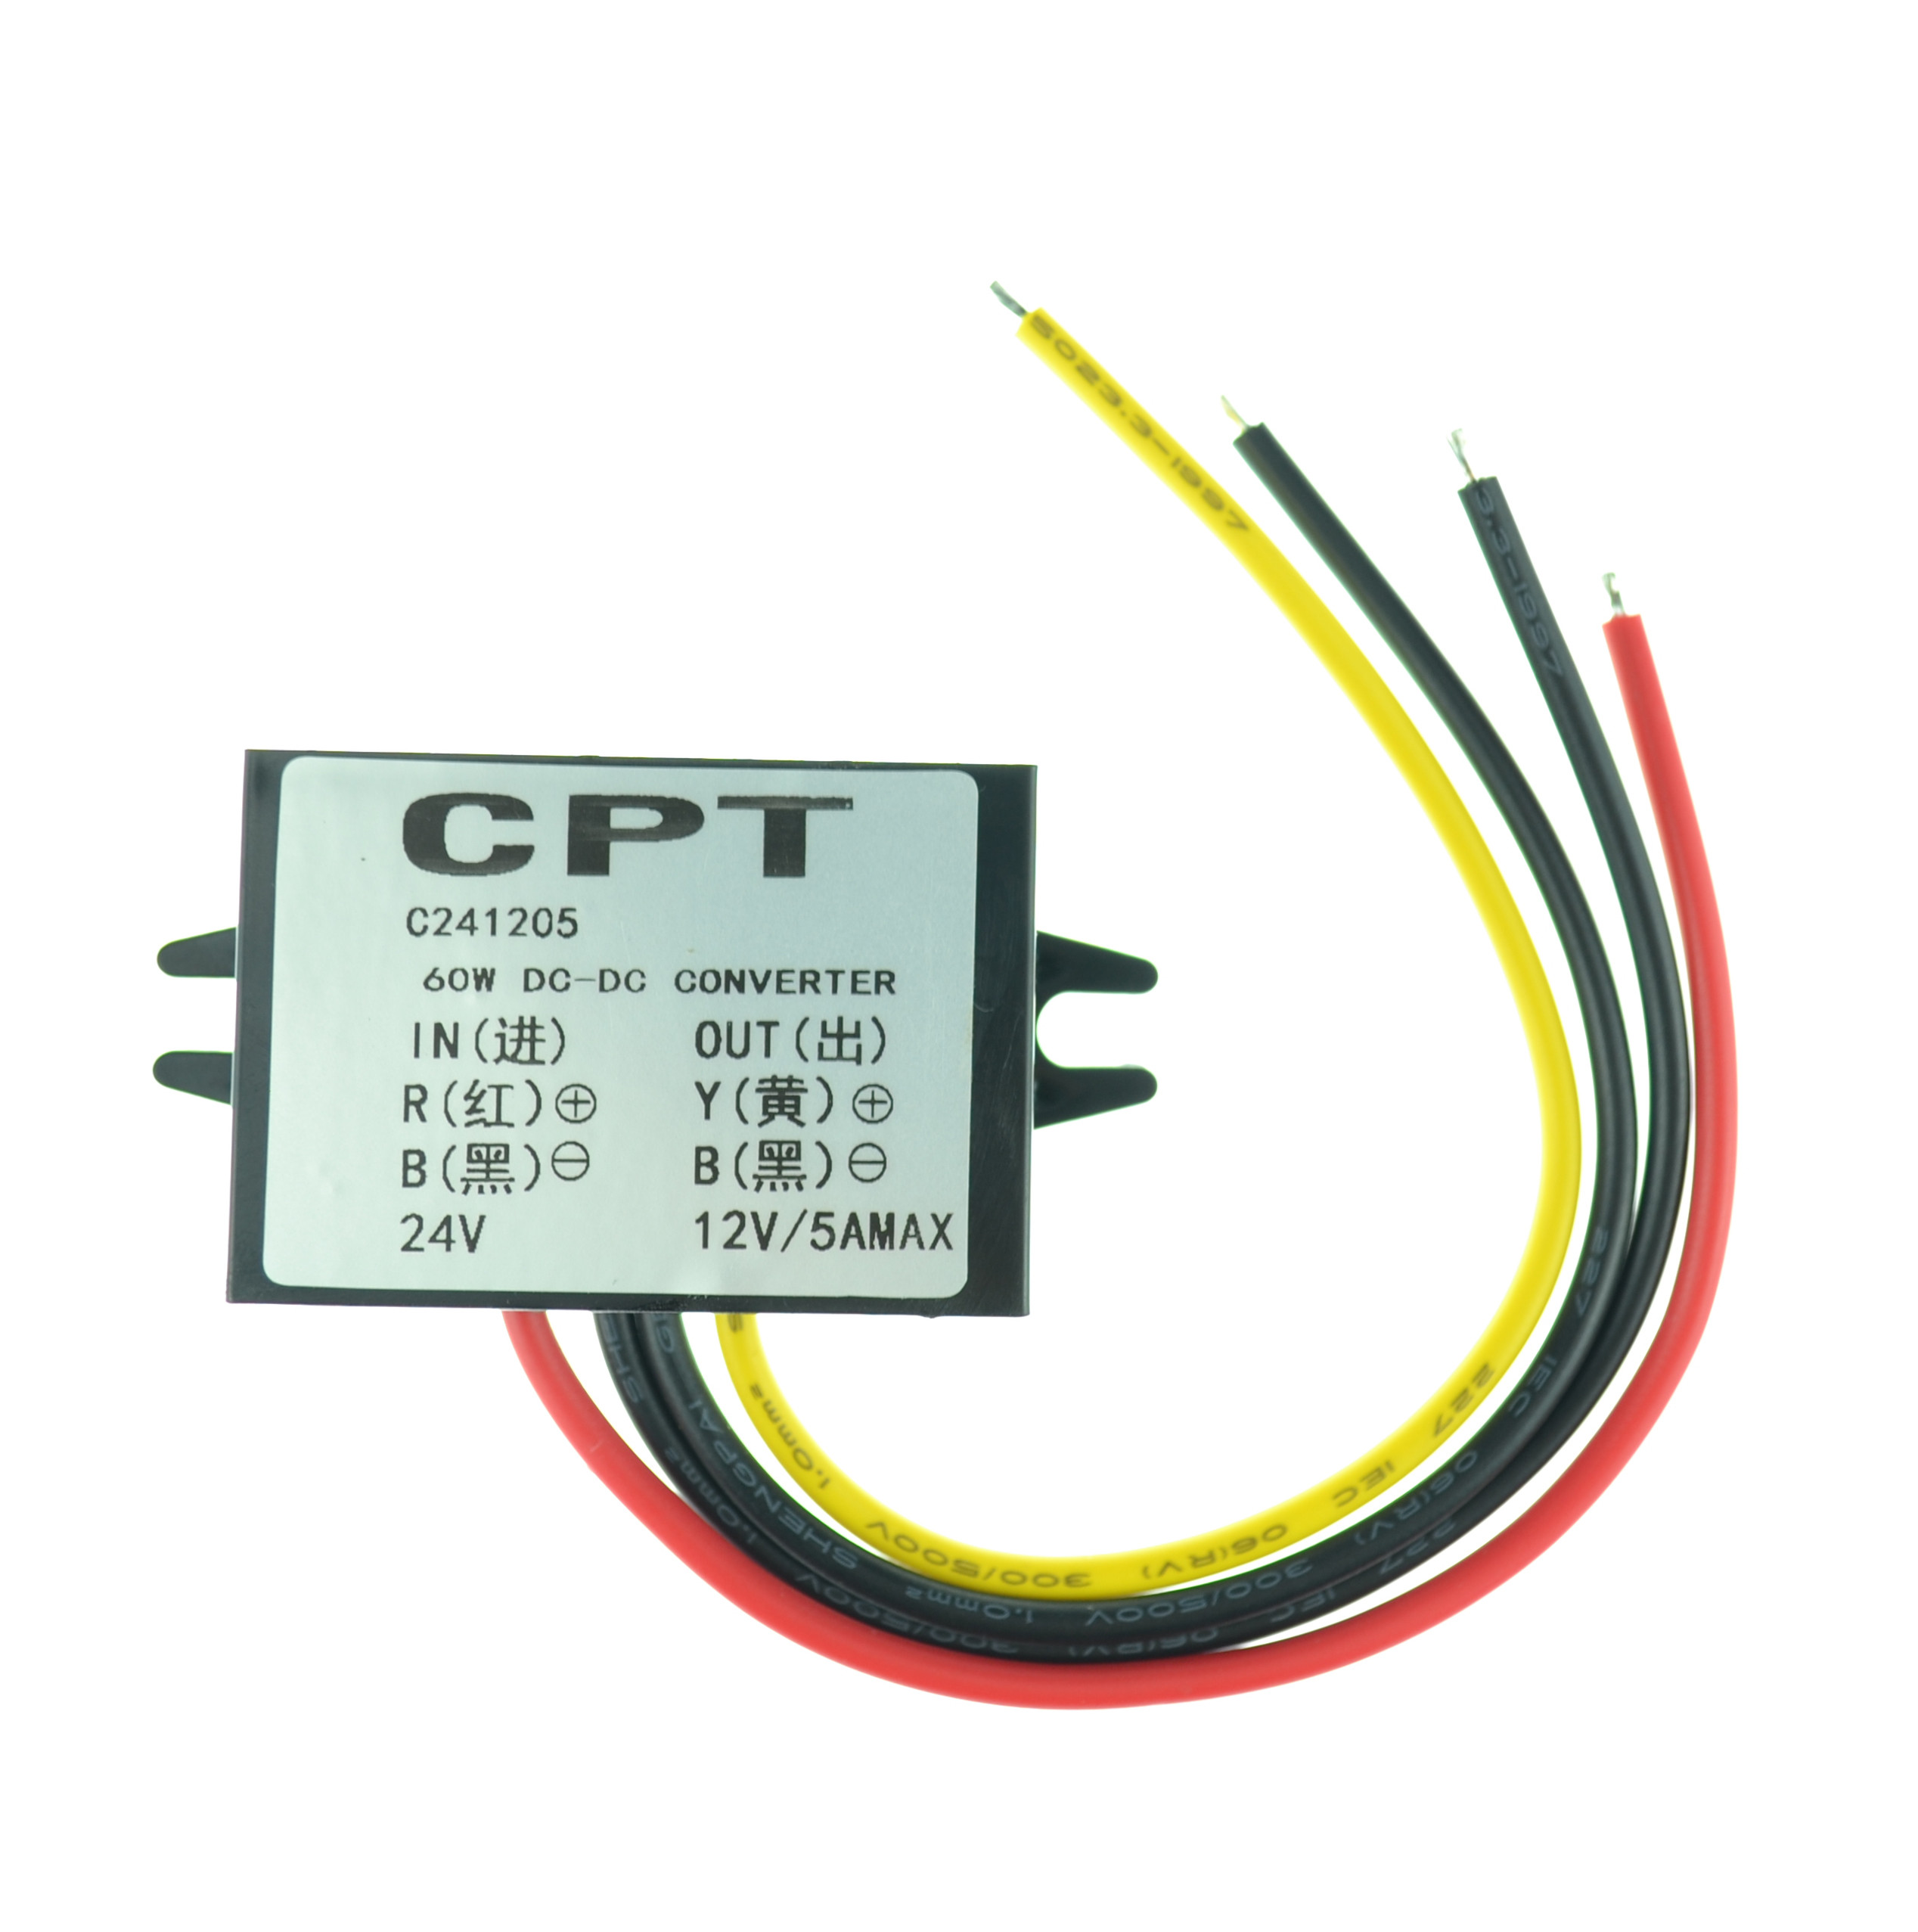 Be114820caa 0001 Plug In 20va 120v Ac 24v Ac Transformer D291168 moreover Honda Eg 5 0kva D Avr Gasoline Generator likewise Page2 as well Control Dc Power as well 9002 120v Ac Solenoid Coil. on ac voltage regulator amazon